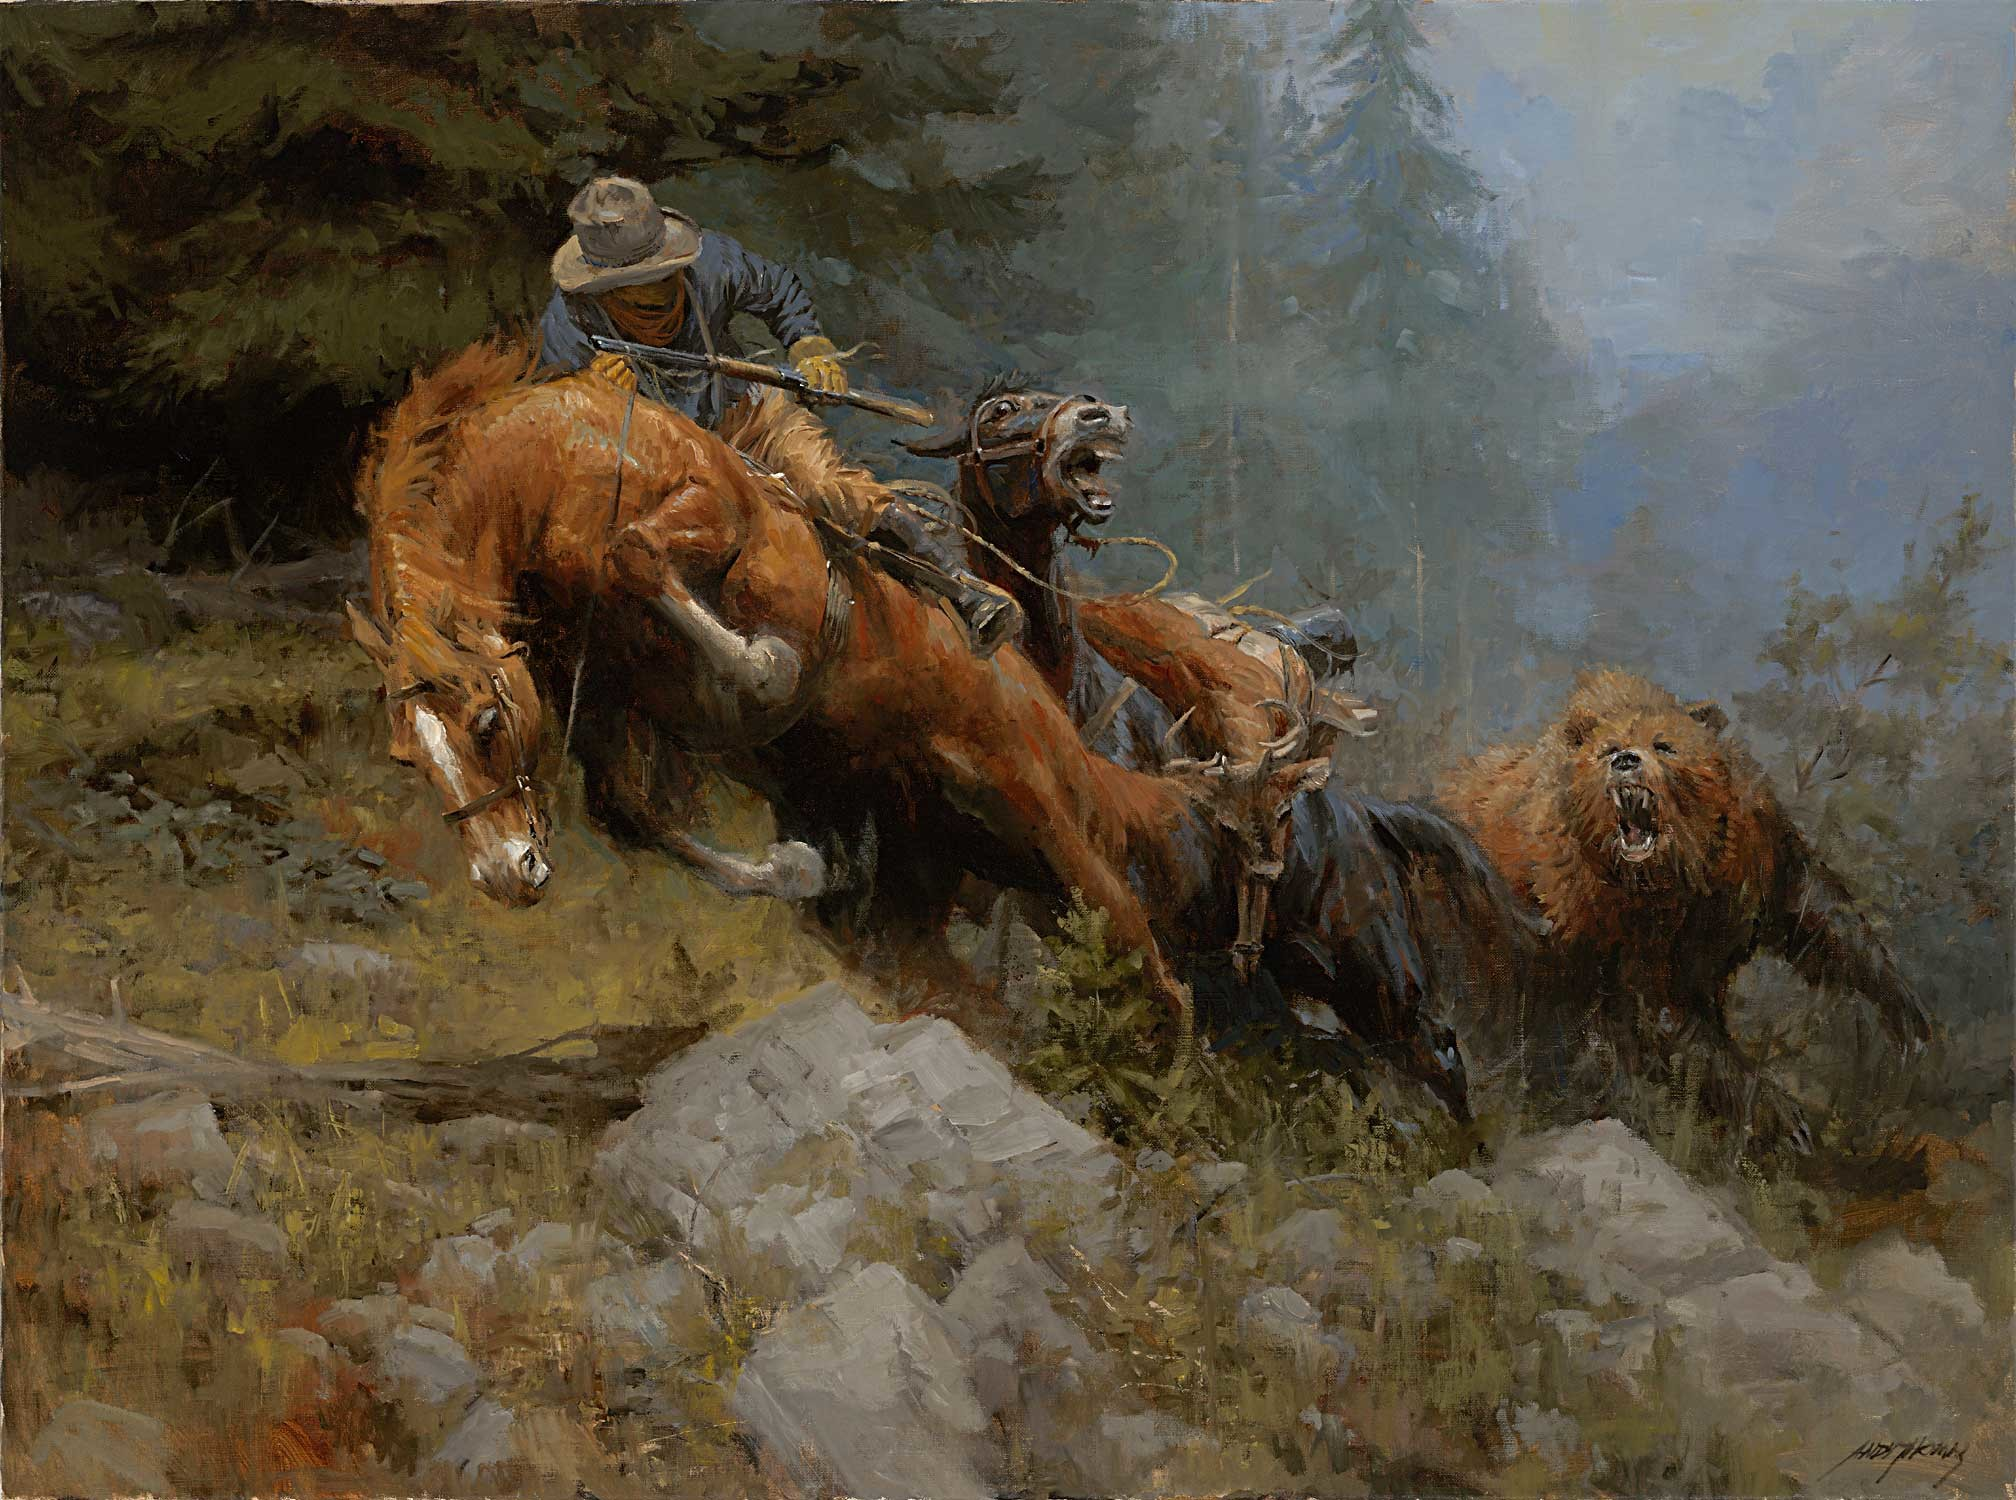 For anyone who played Red Dead Redemption this painting/wallpaper reminds  me of the northern